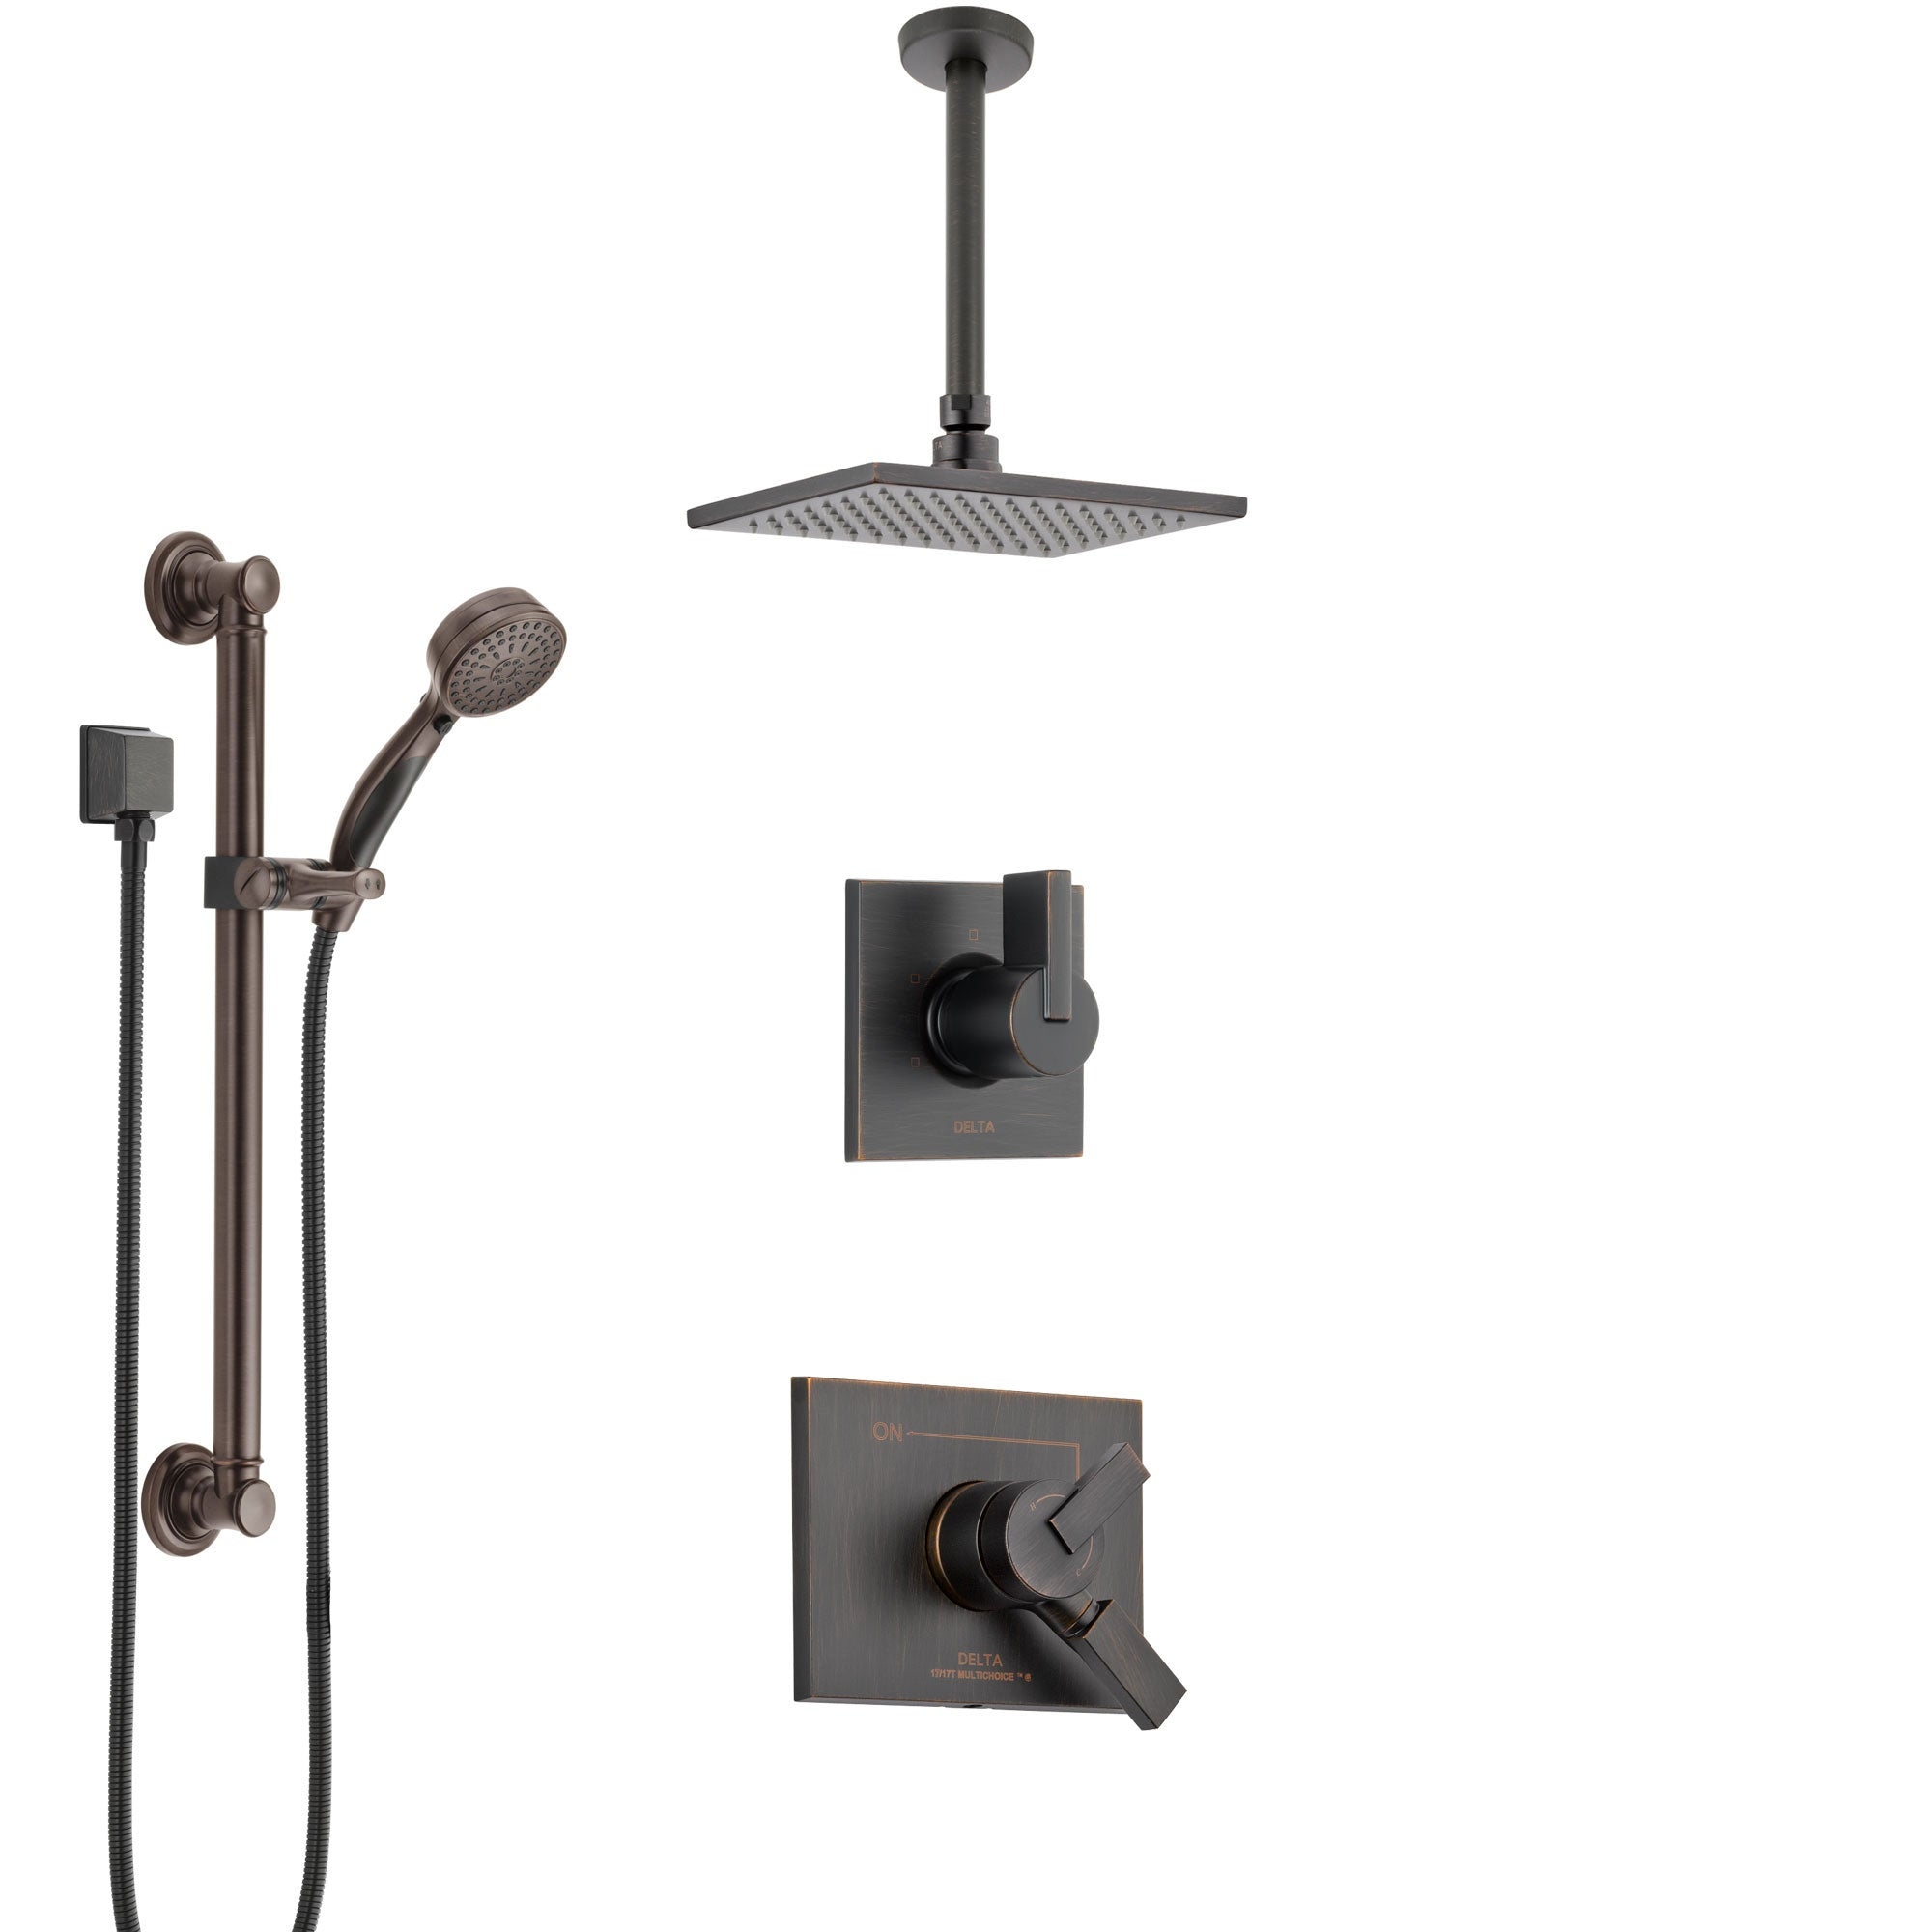 Delta Vero Venetian Bronze Shower System with Dual Control Handle, Diverter, Ceiling Mount Showerhead, and Hand Shower with Grab Bar SS1753RB1